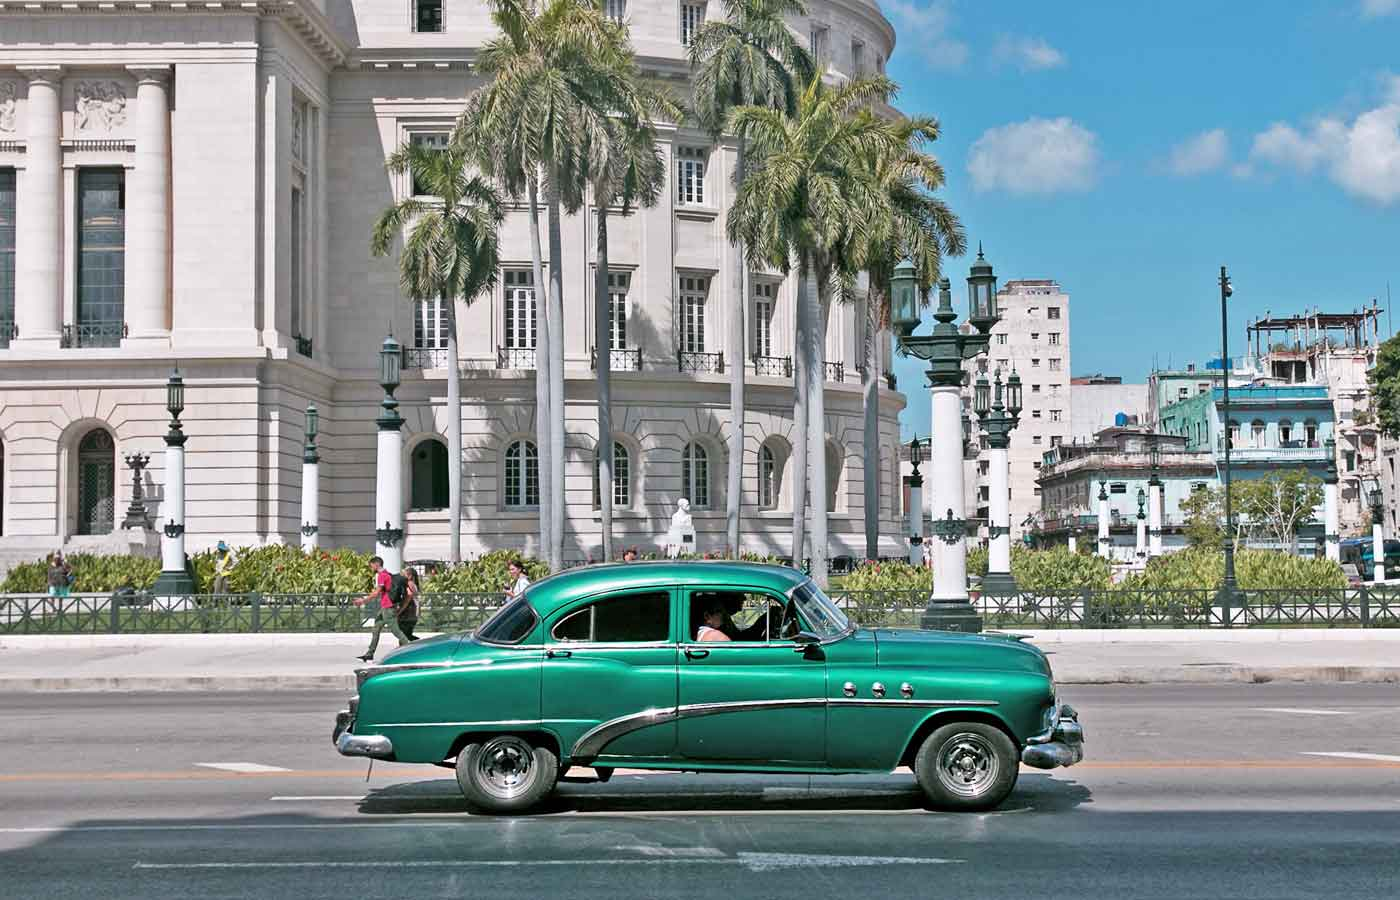 Classic cars are a common sight on the streets of Old Havana